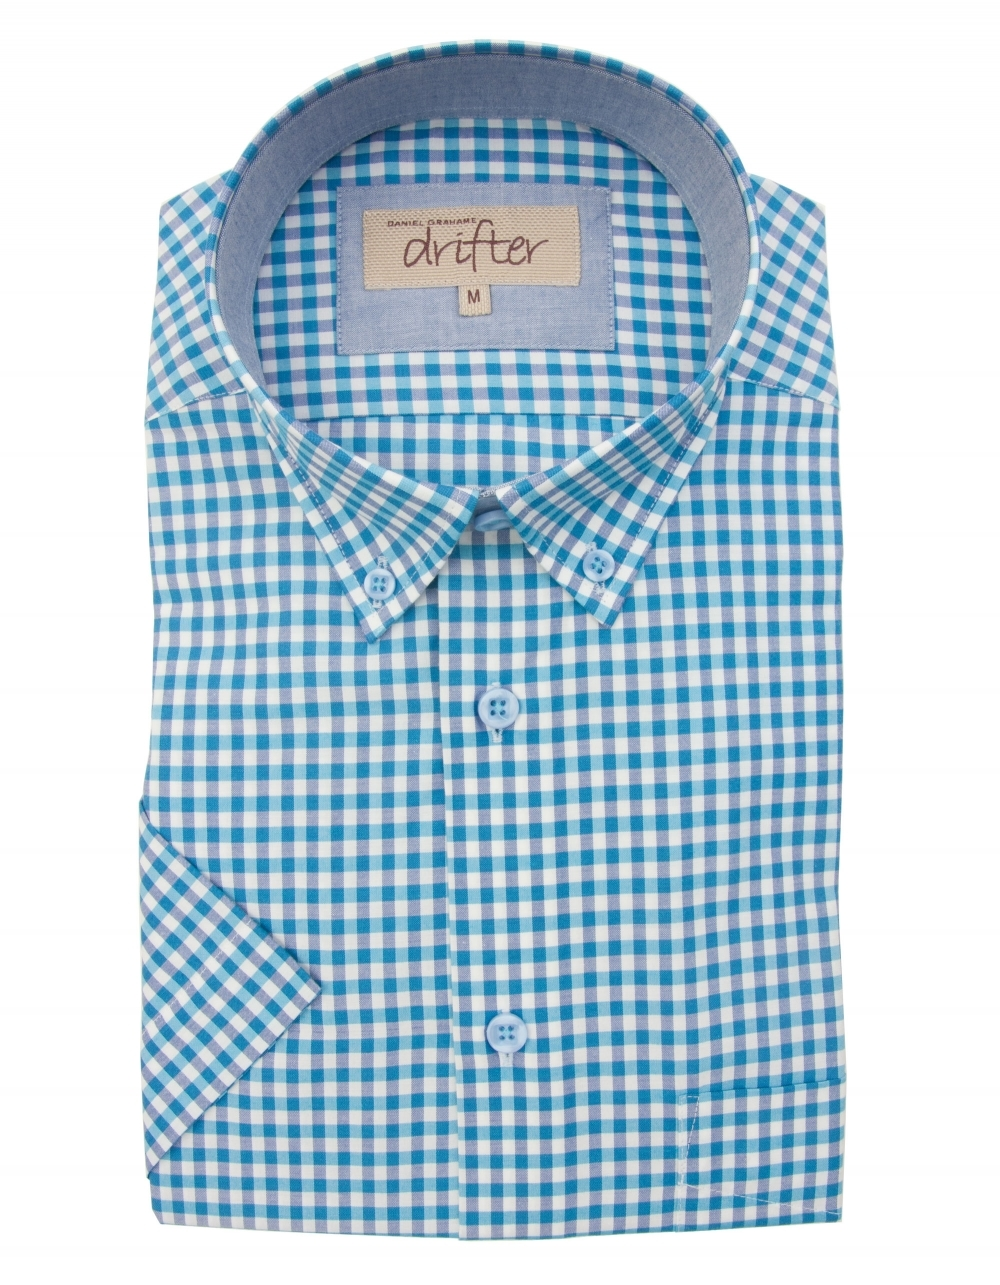 Daniel Grahame turquoise checked shirt